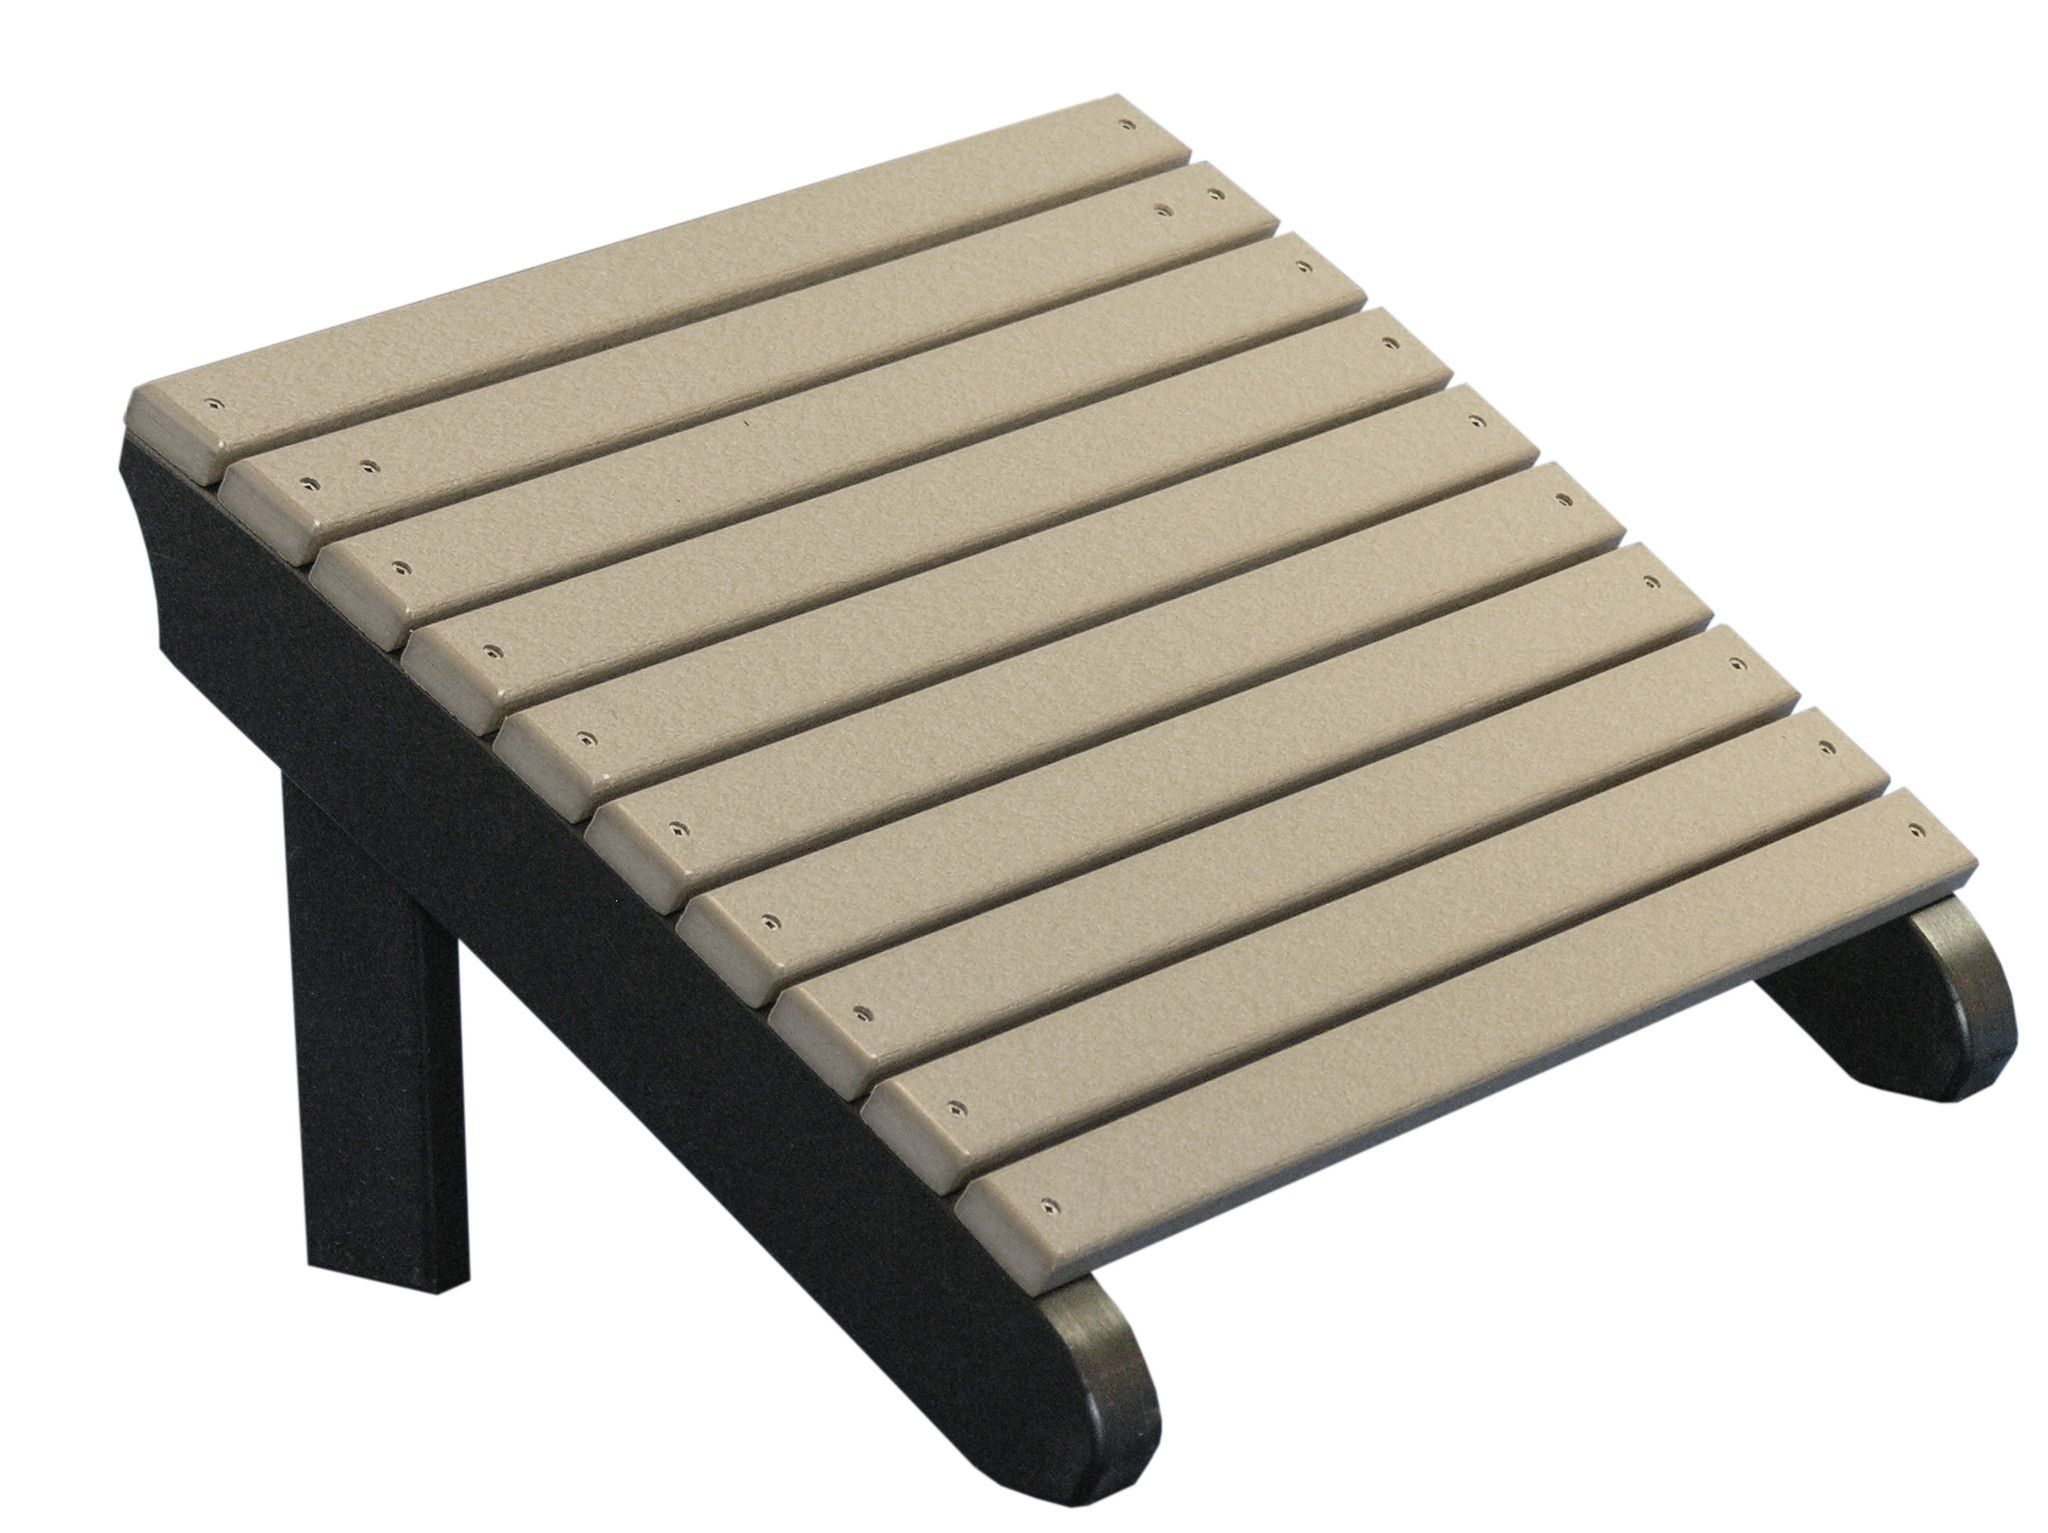 Luxcraft recycled plastic deluxe adirondack footrest footrest and